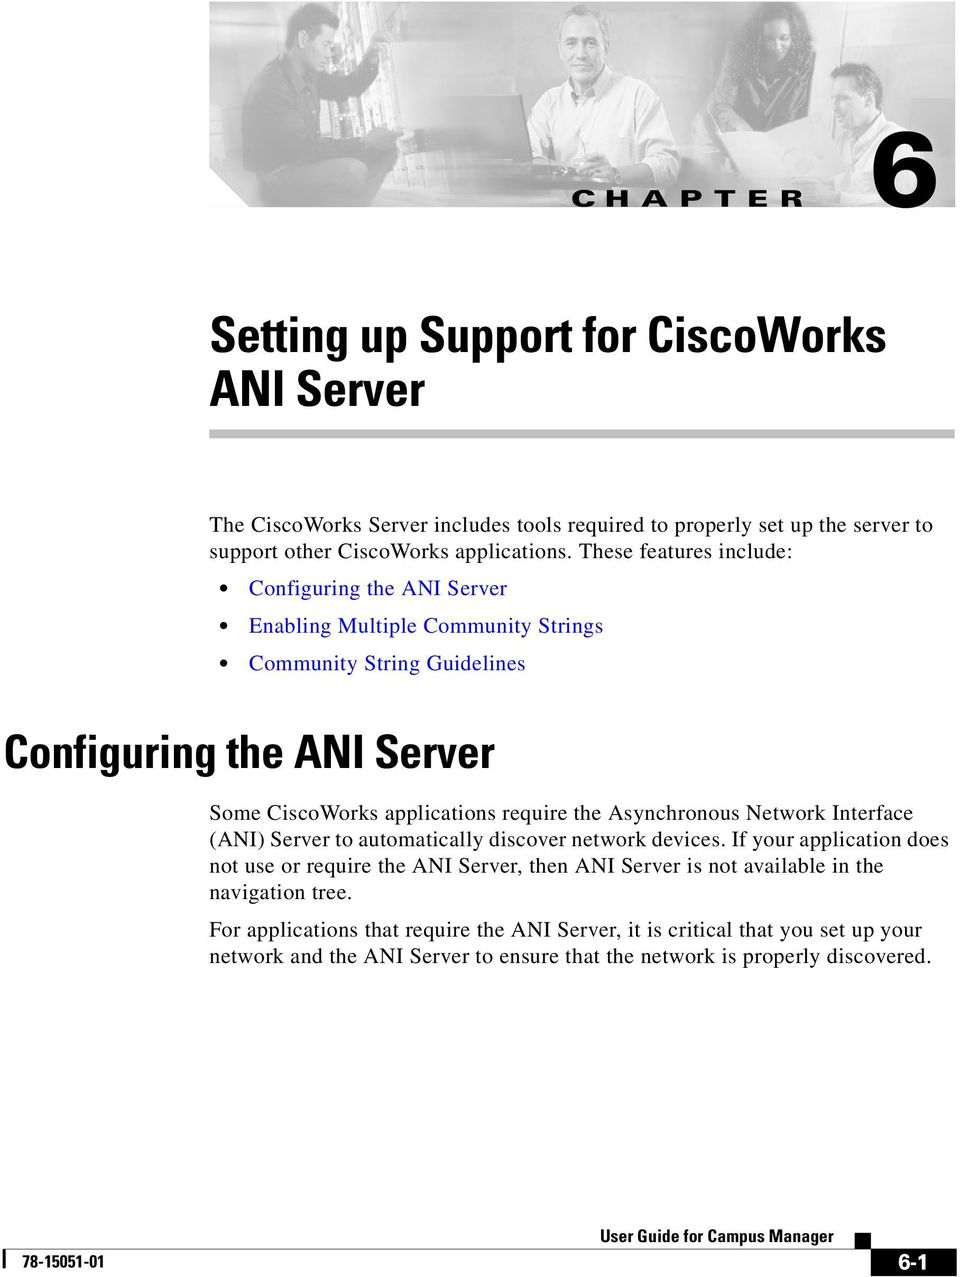 the Asynchronous Network Interface (ANI) Server to automatically discover network devices.